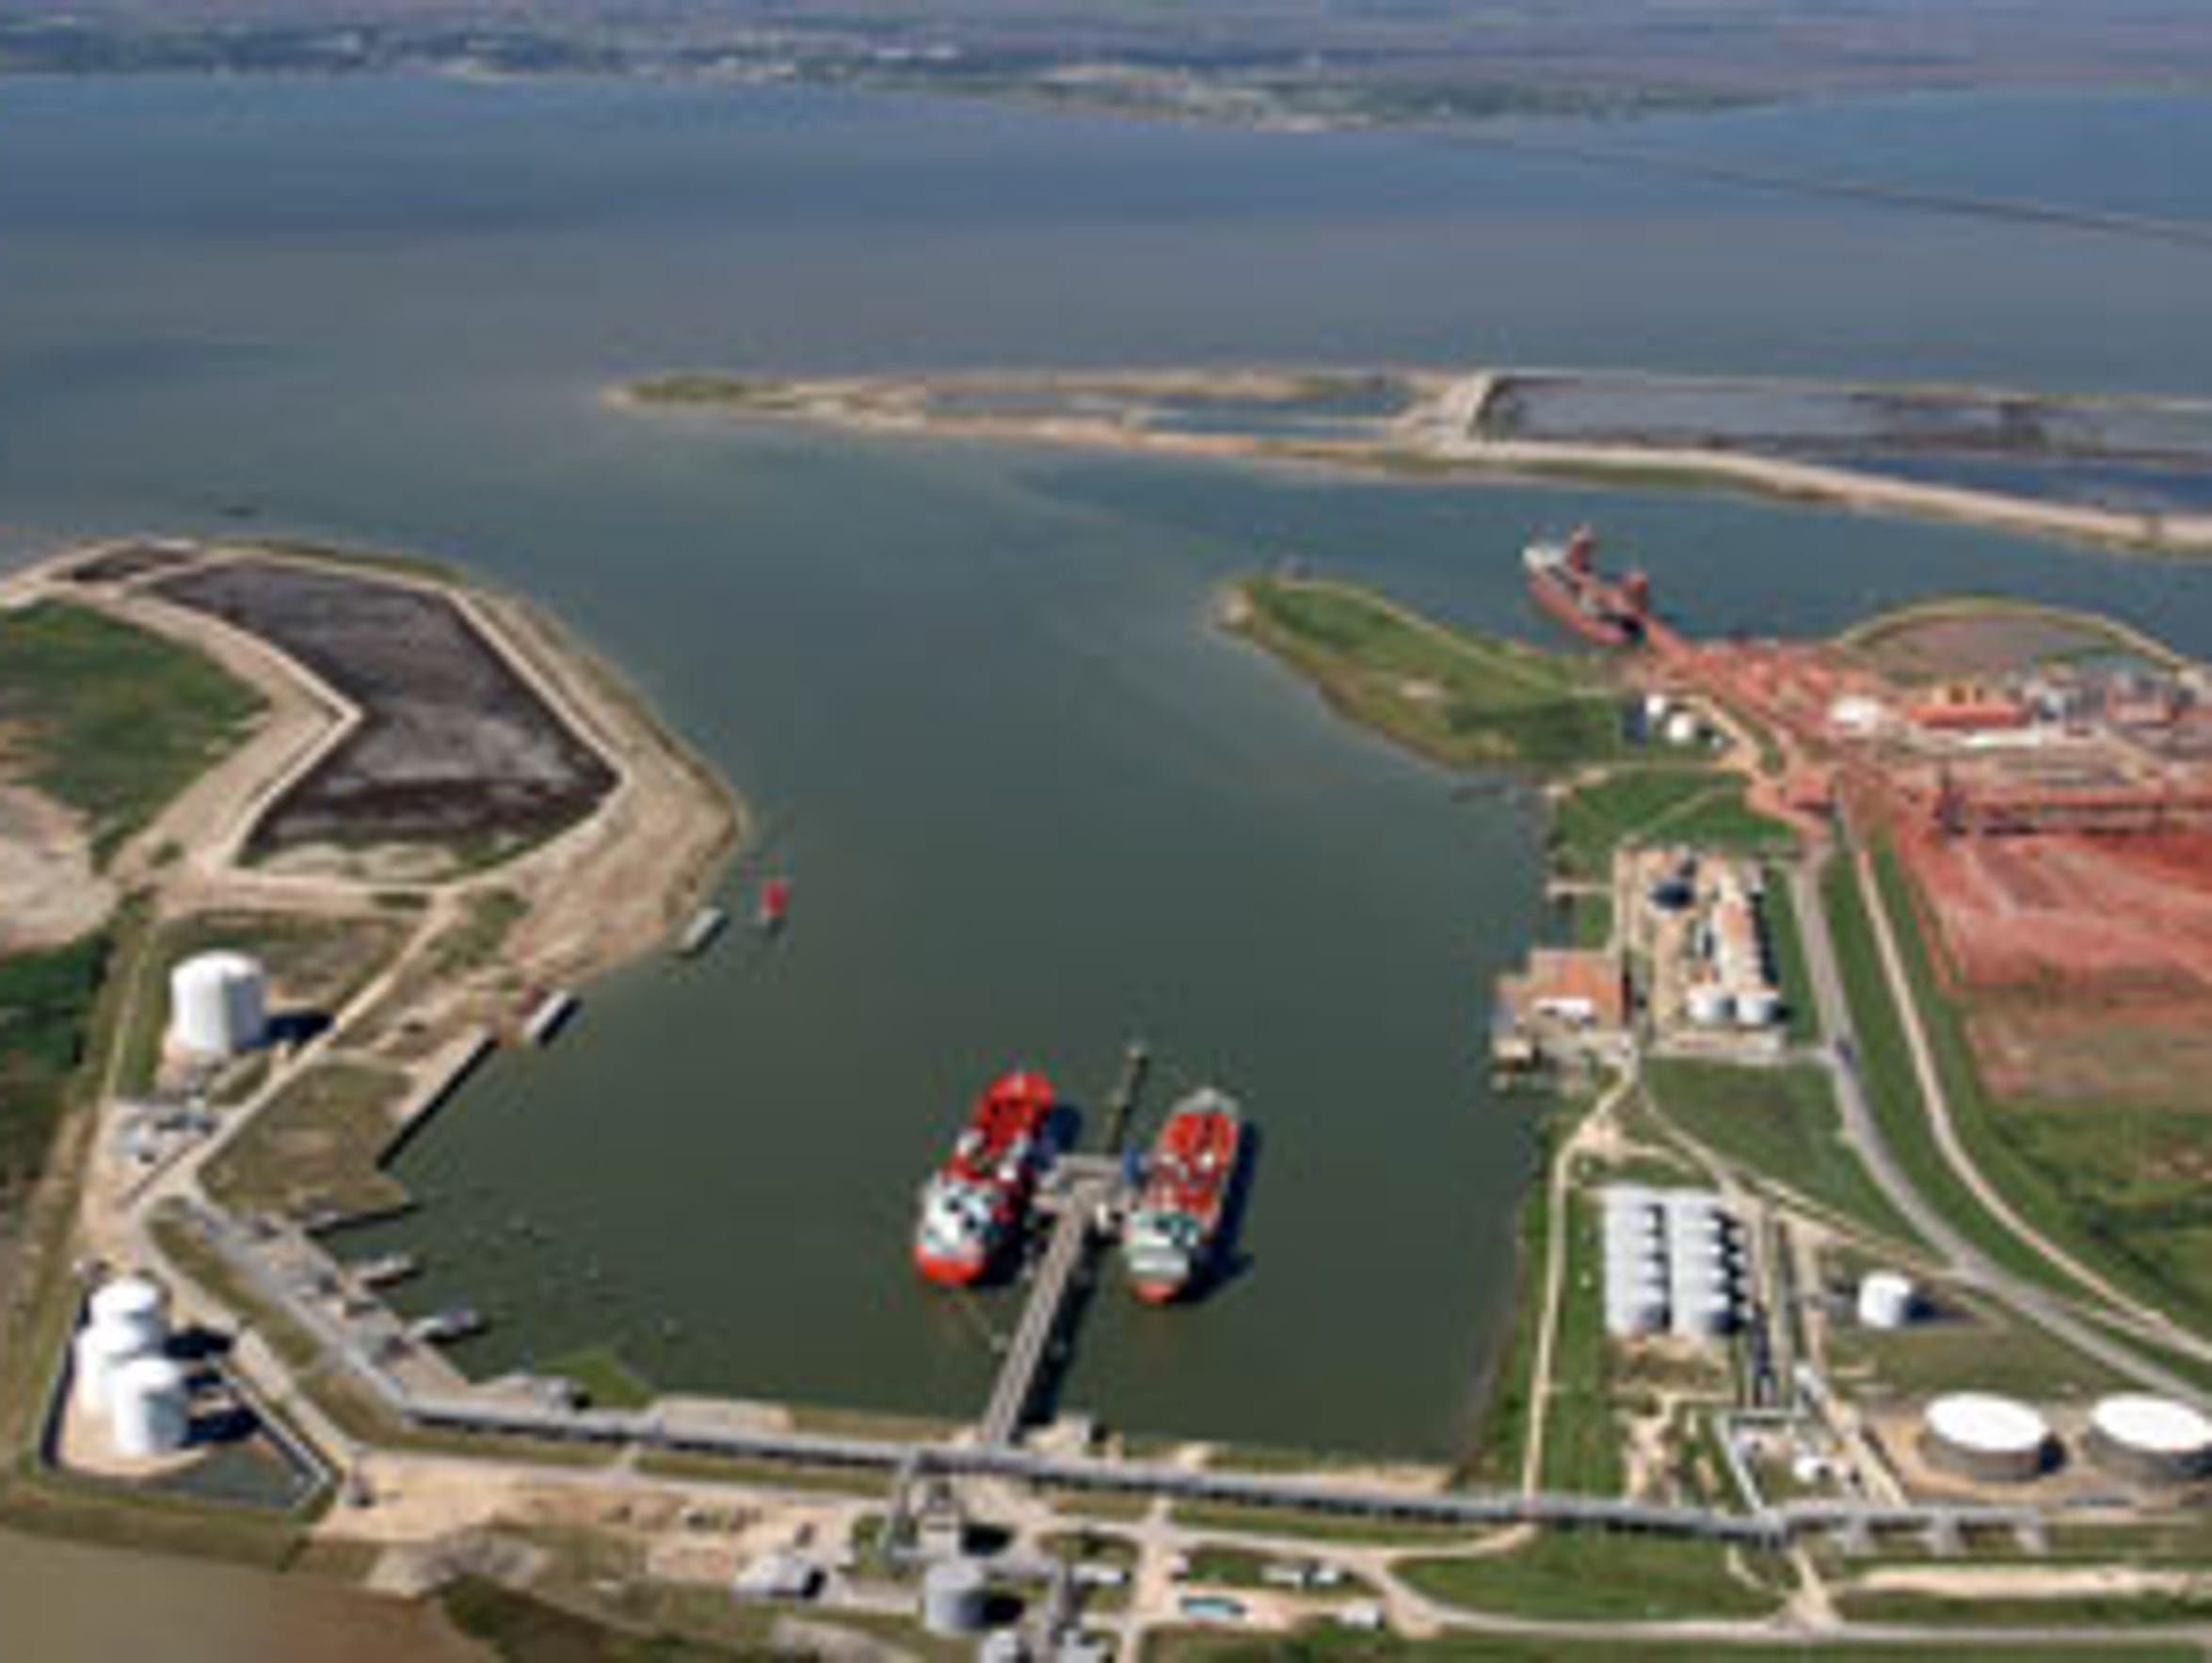 The Port of Port Lavaca-Point Comfort has hired former congressman Blake Farenthold as a legislative liaison. He will be tasked with promoting the port's agenda to federal lawmakers